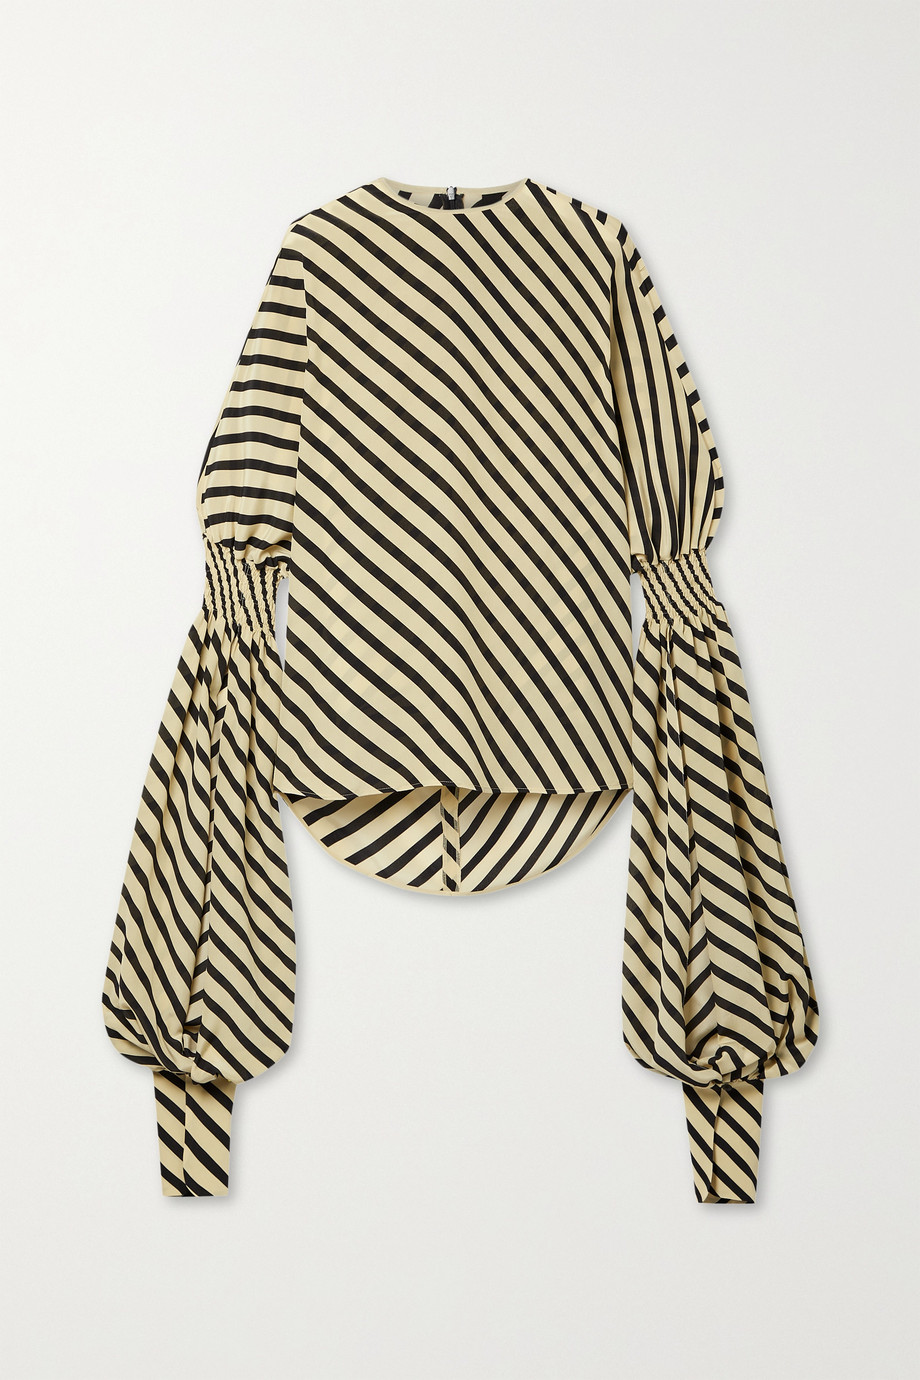 PETAR PETROV Castel striped silk top